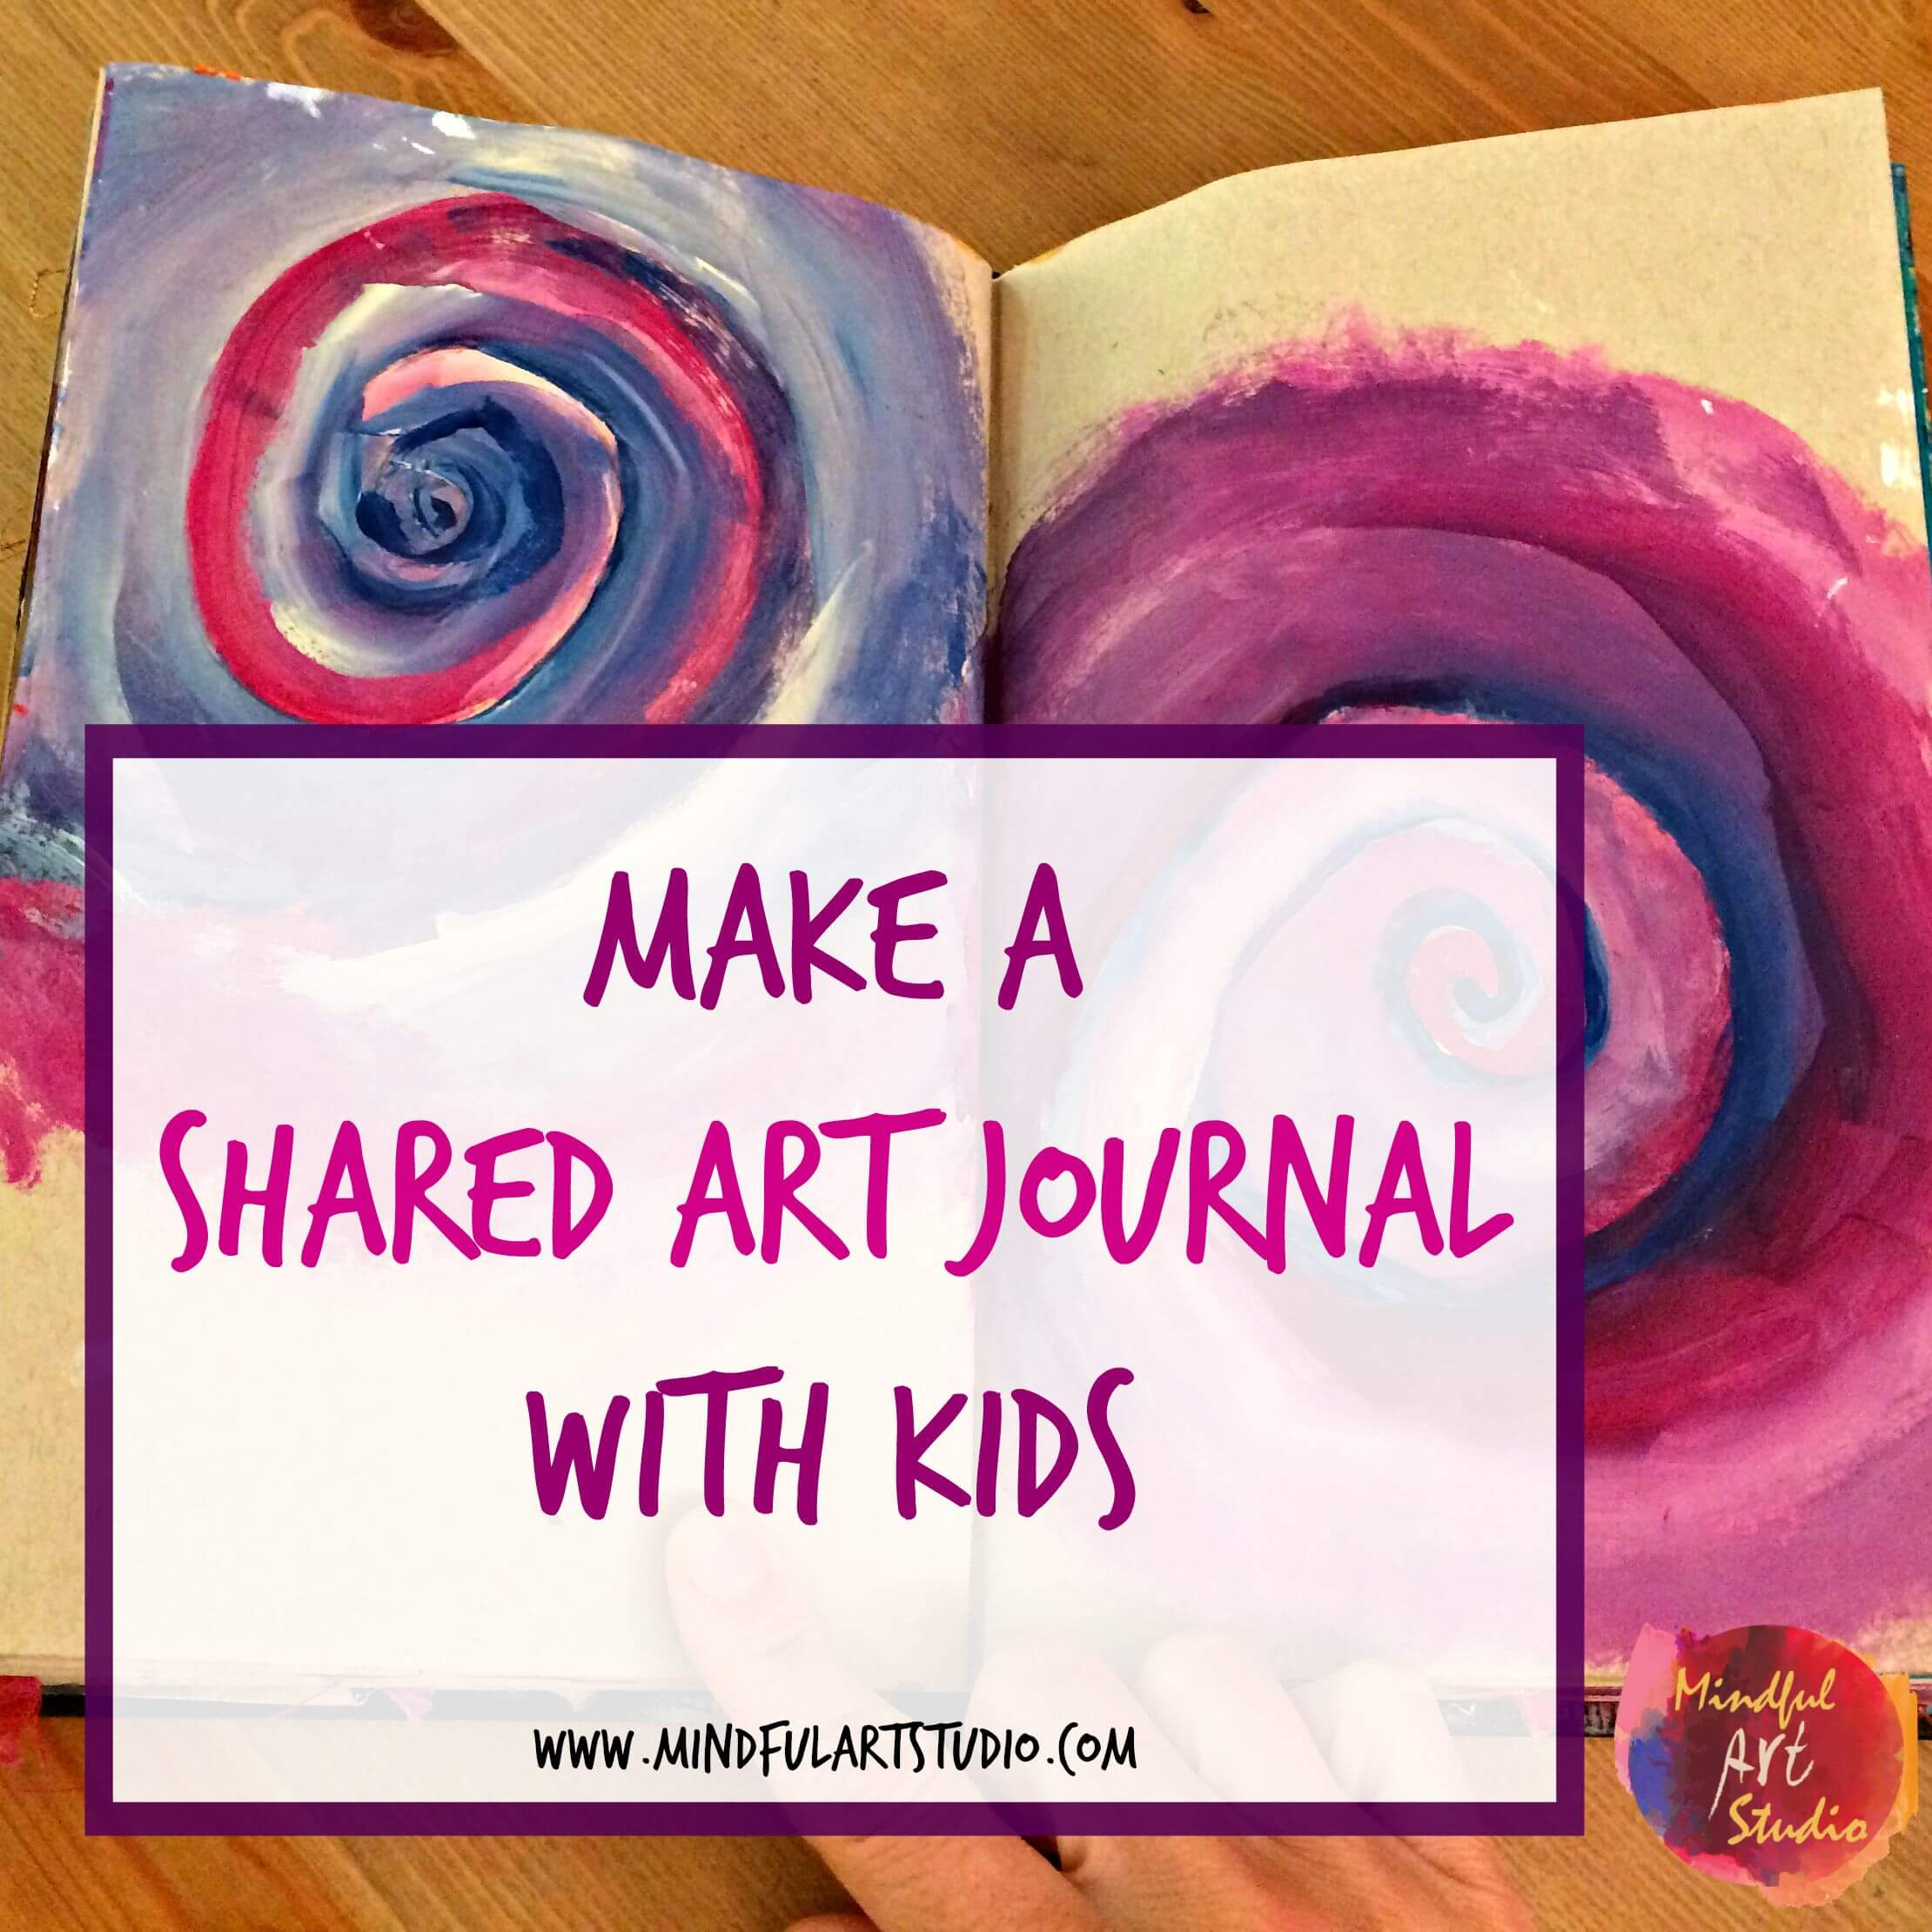 Make a Shared Art Journal with Kids